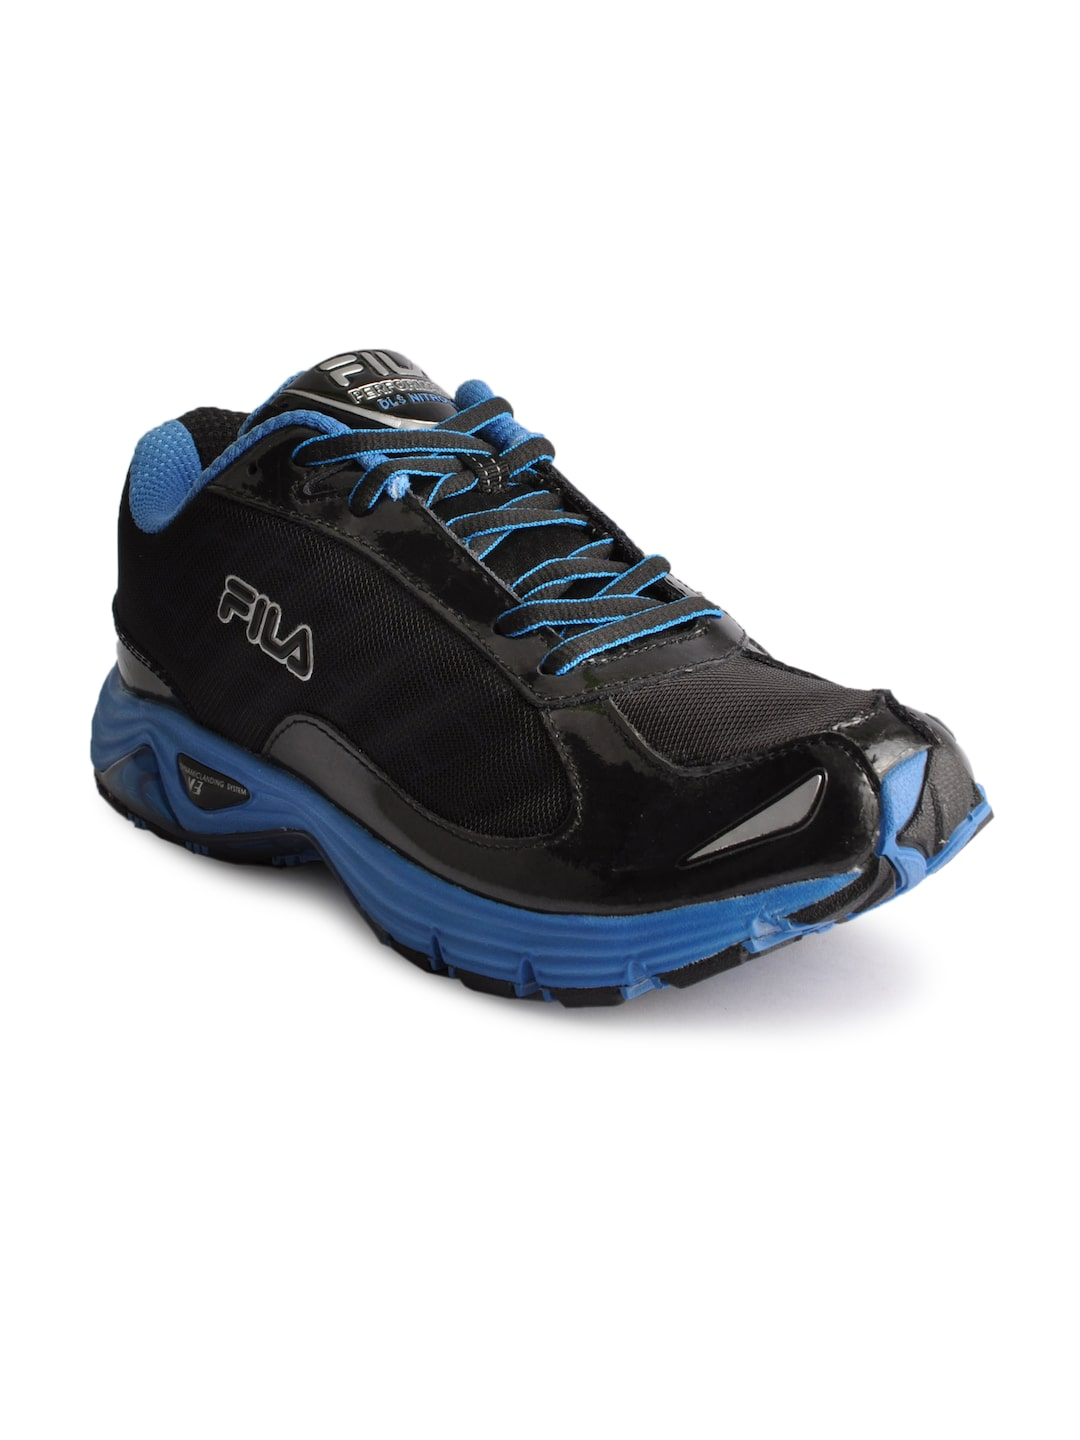 fila sports shoes price in india 28 images fila